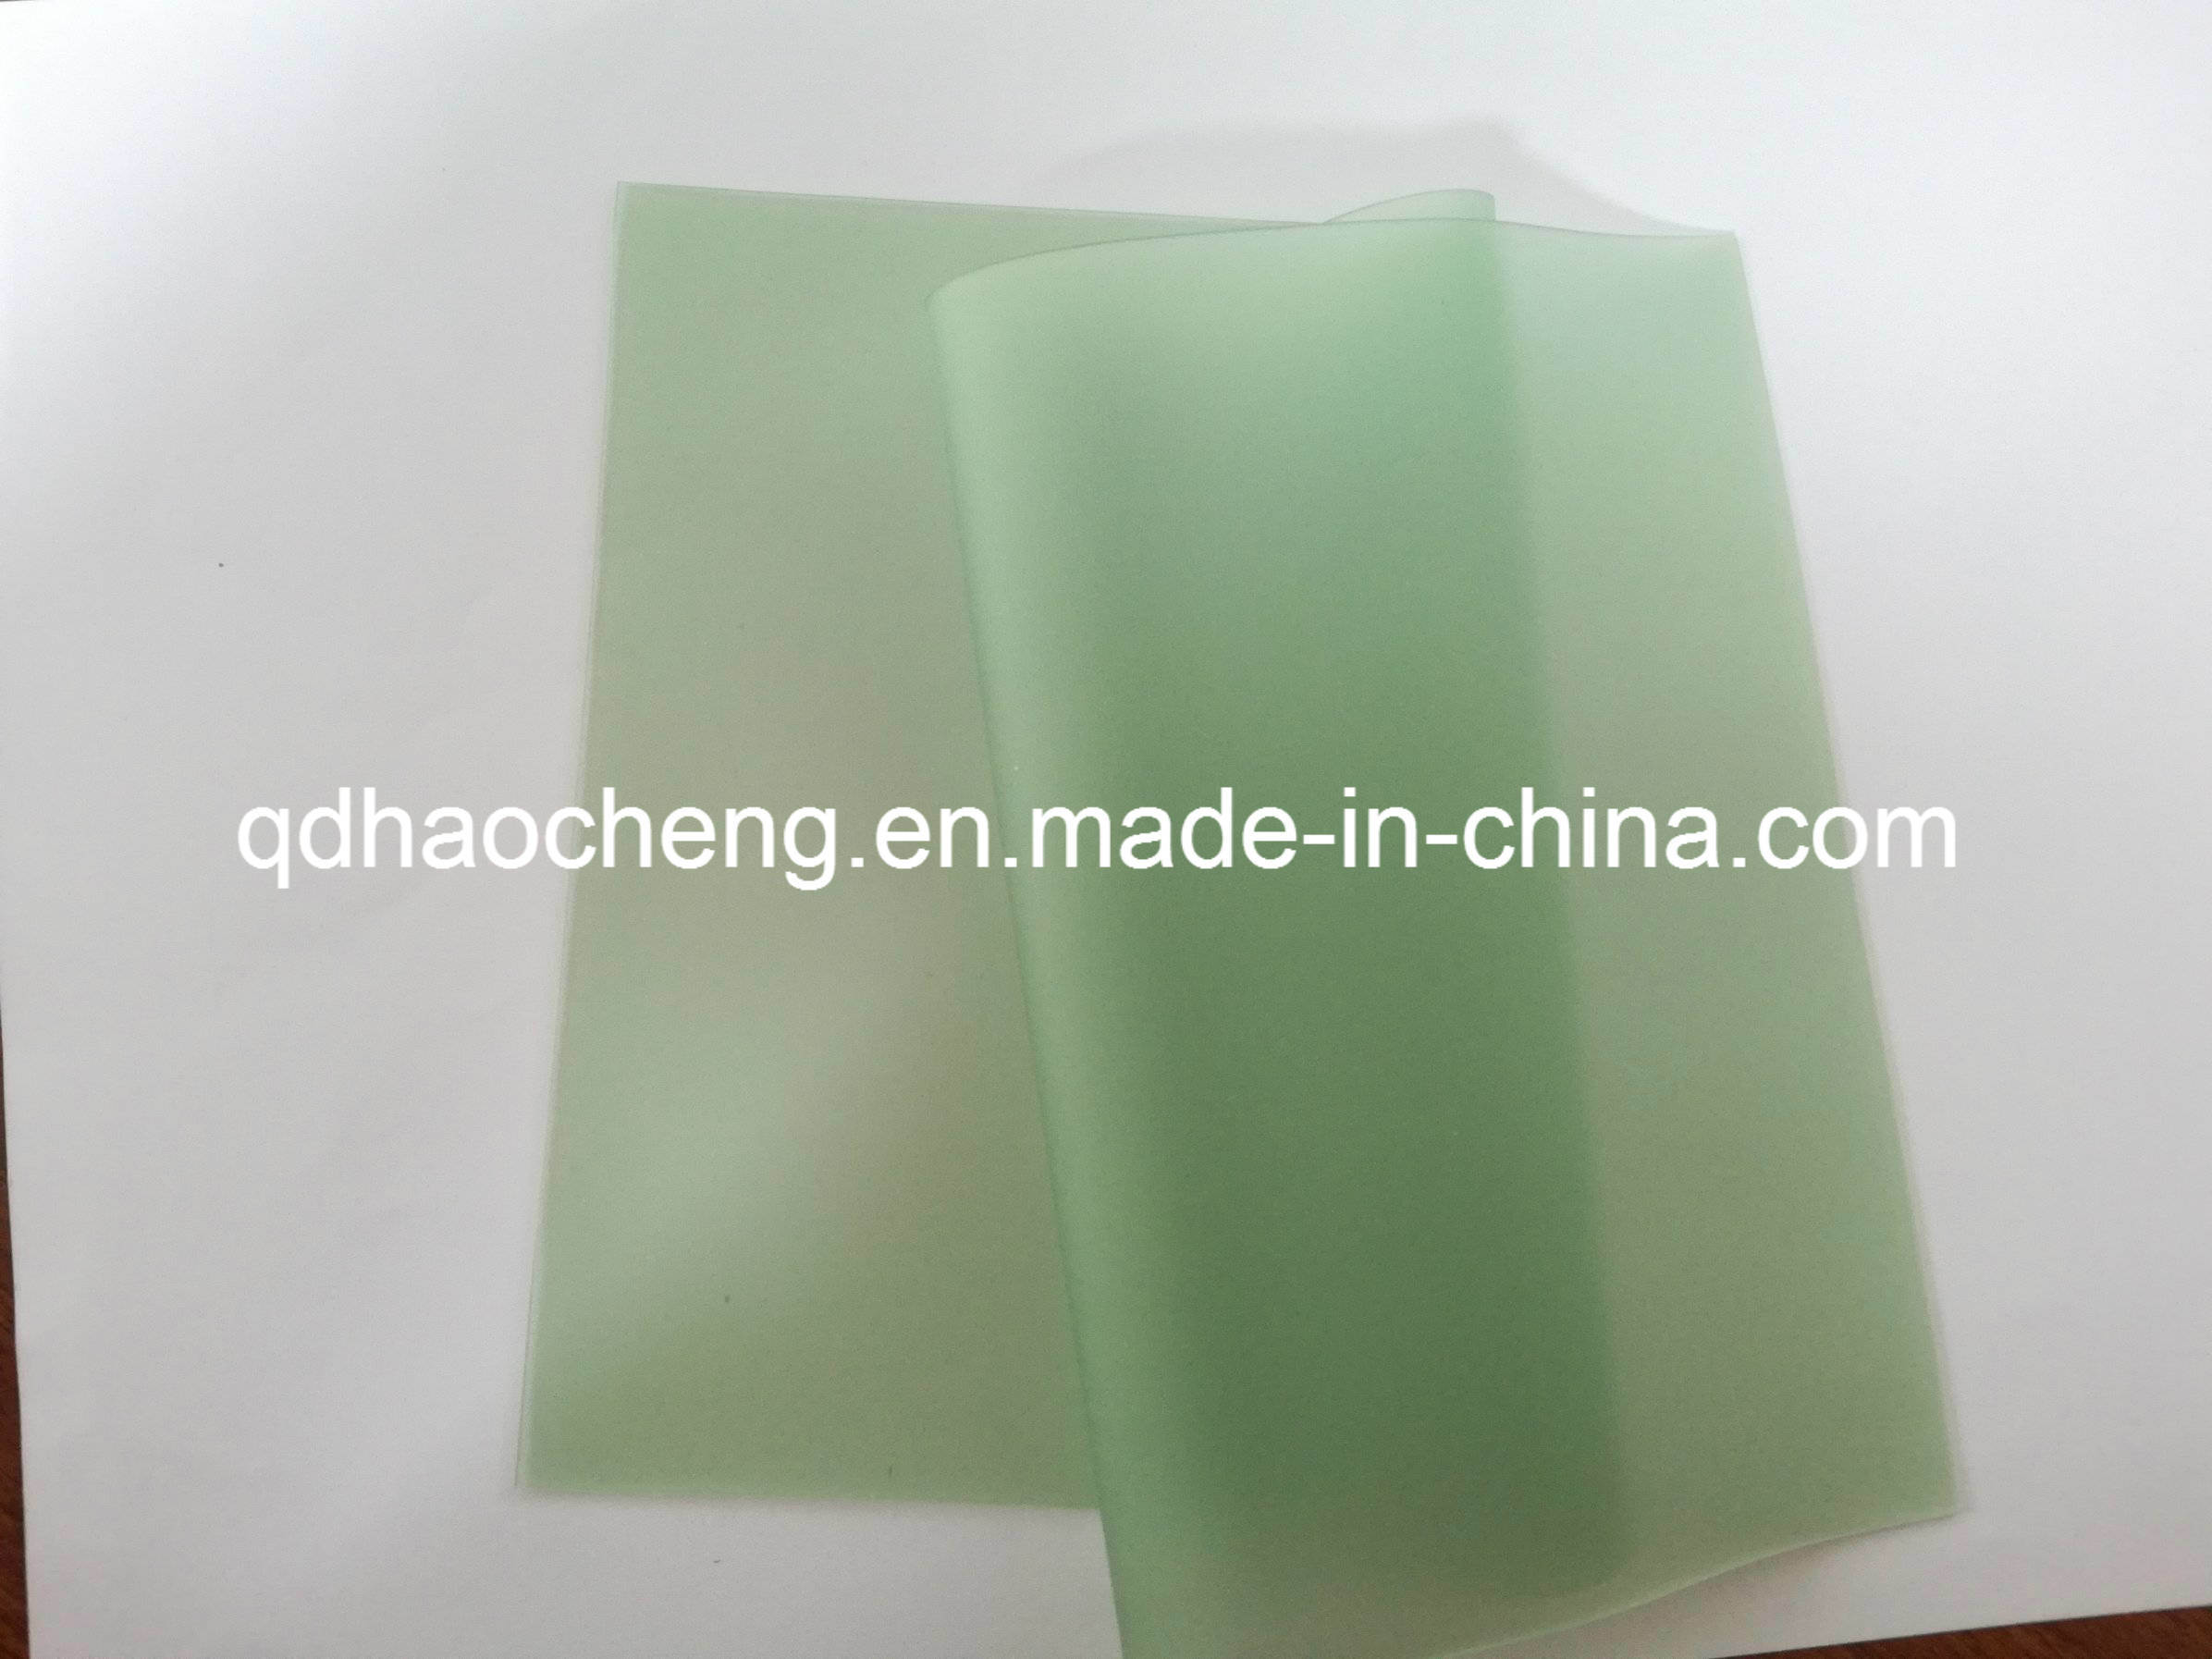 French-Green PVB Interlayer Used for Automotive Windshield Glass